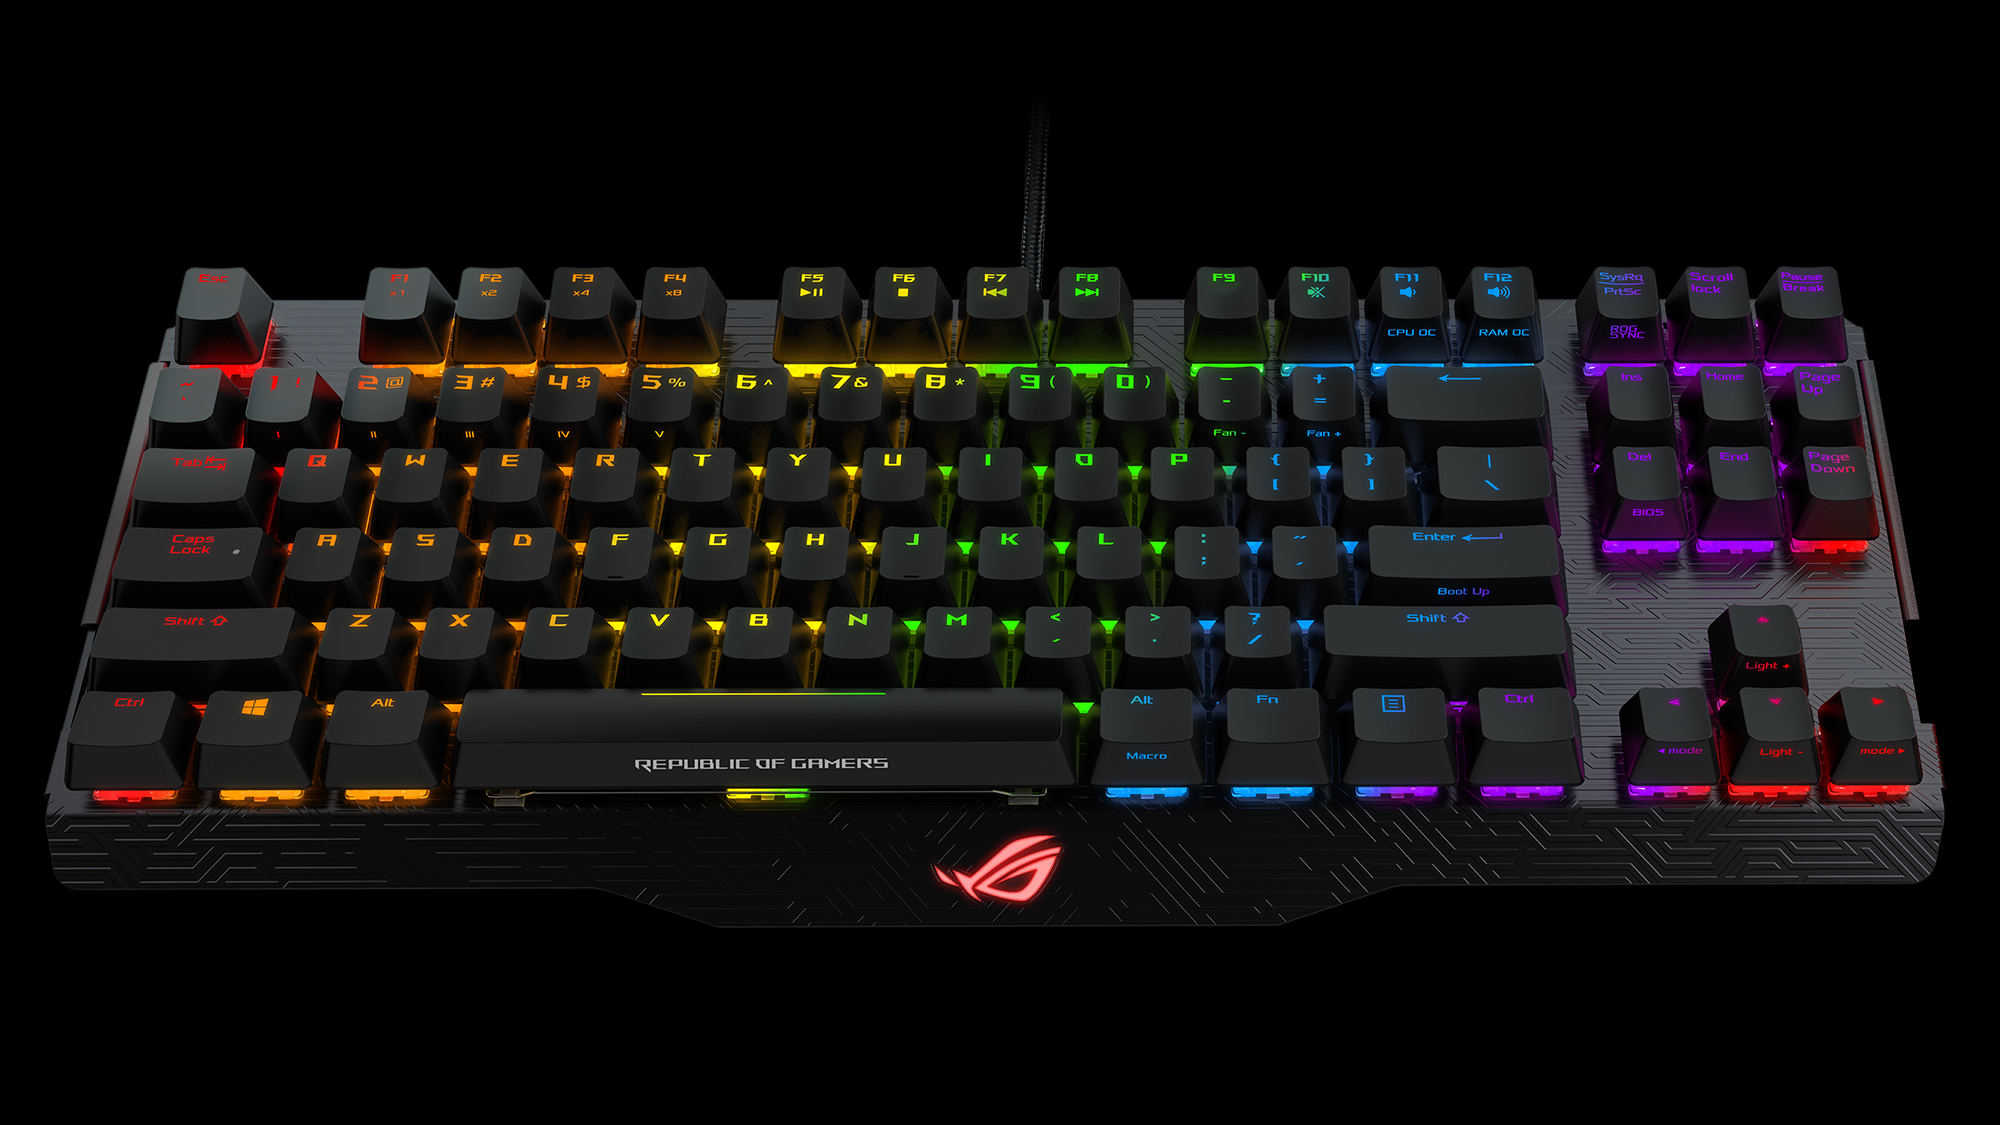 Asus Aura keyboard Download